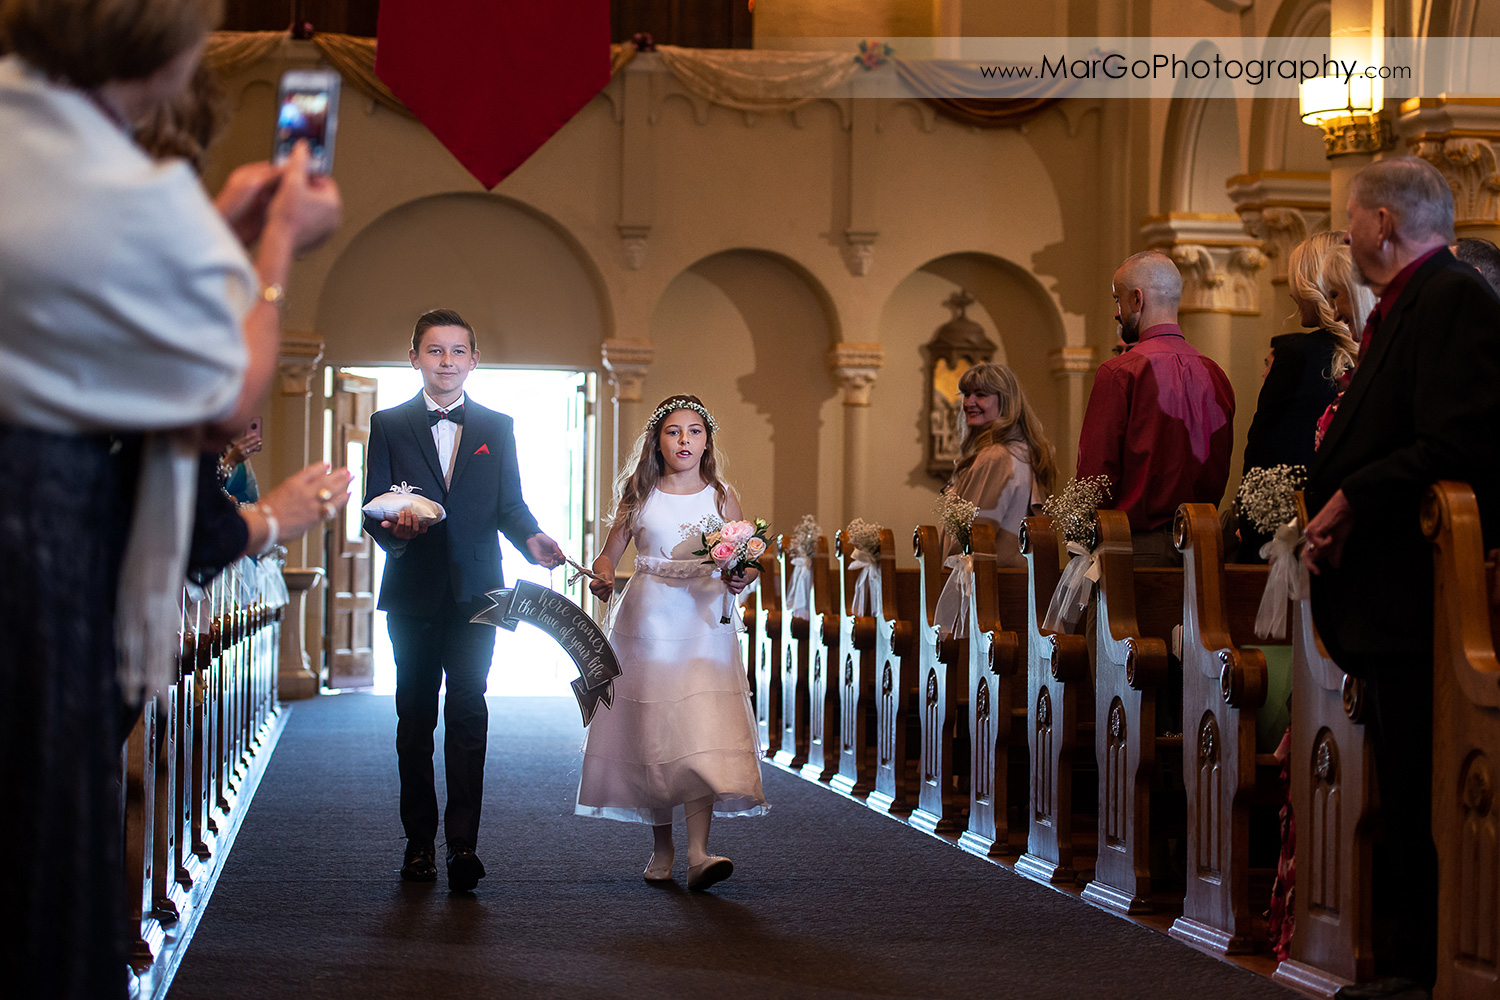 flower girl and ring bearer walking down the aisle during wedding ceremony at Oakland Church of Saint Leo the Great